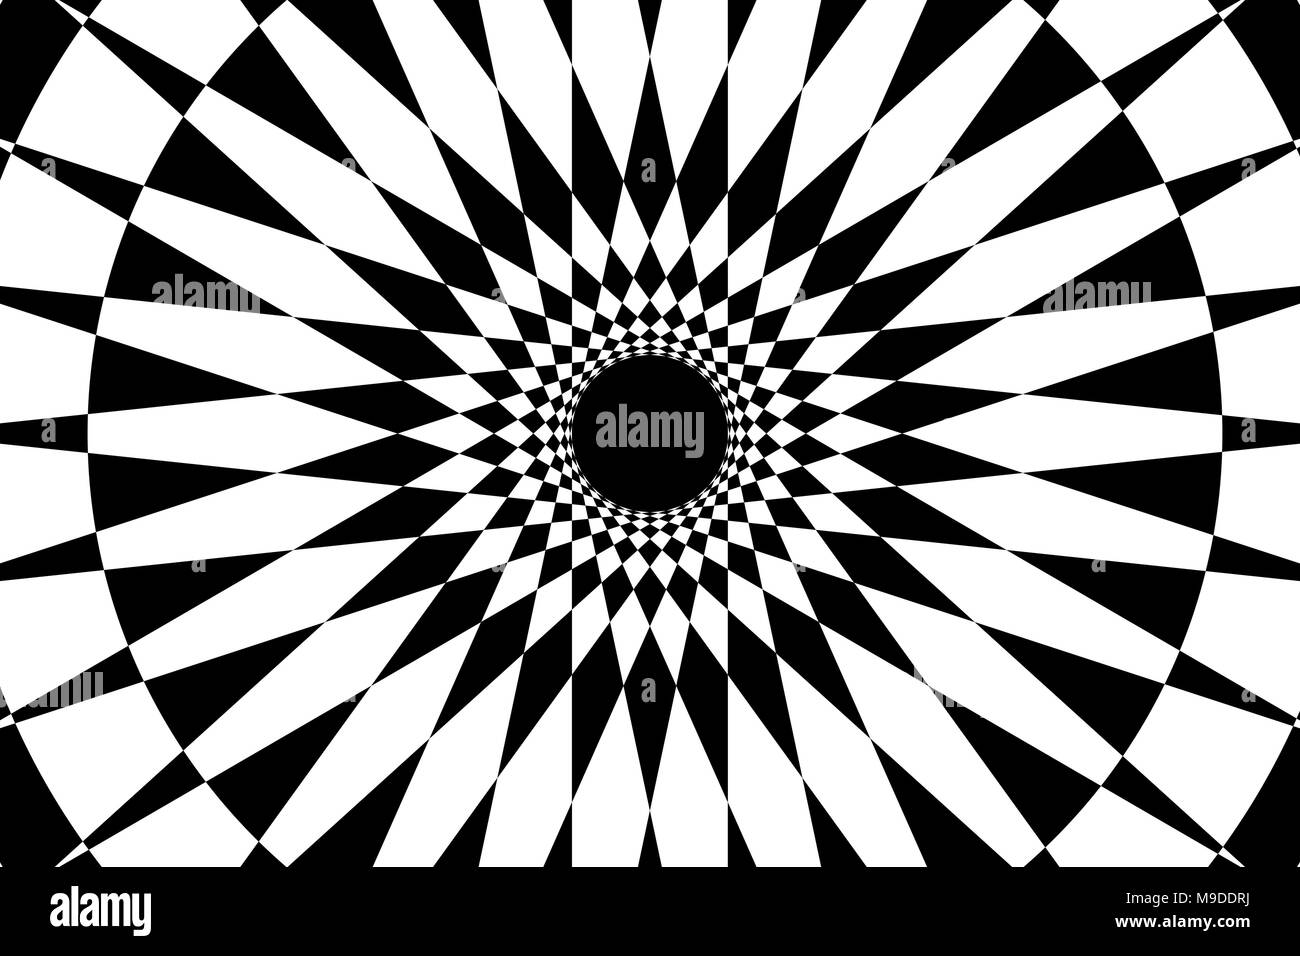 Abstract Geometric Pattern Black And White Circular Mathematical